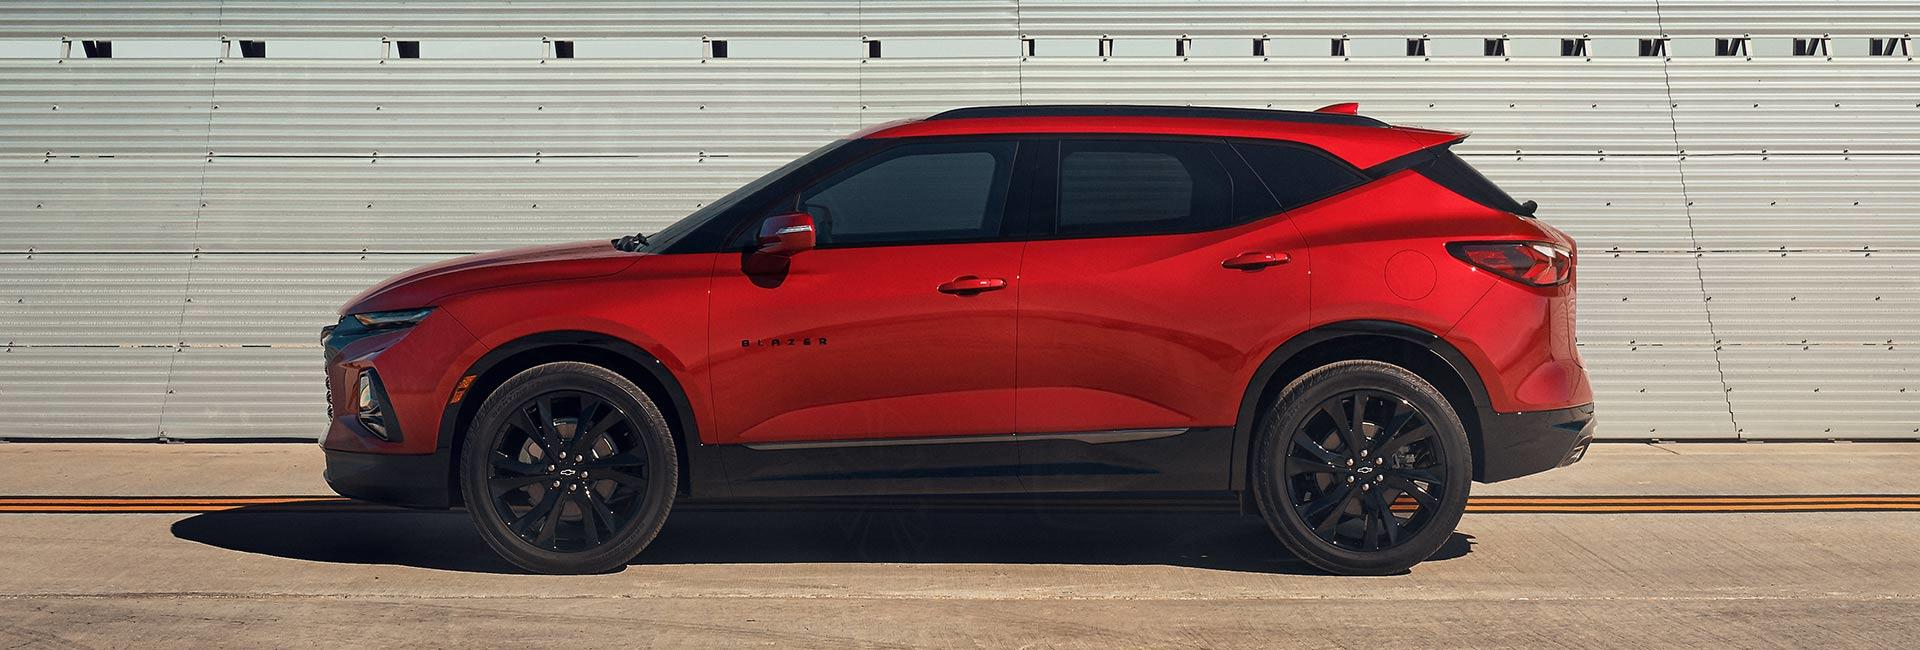 Picture of the new 2020 Chevy Blazer for sale at Spitzer Chevy North Canton Ohio